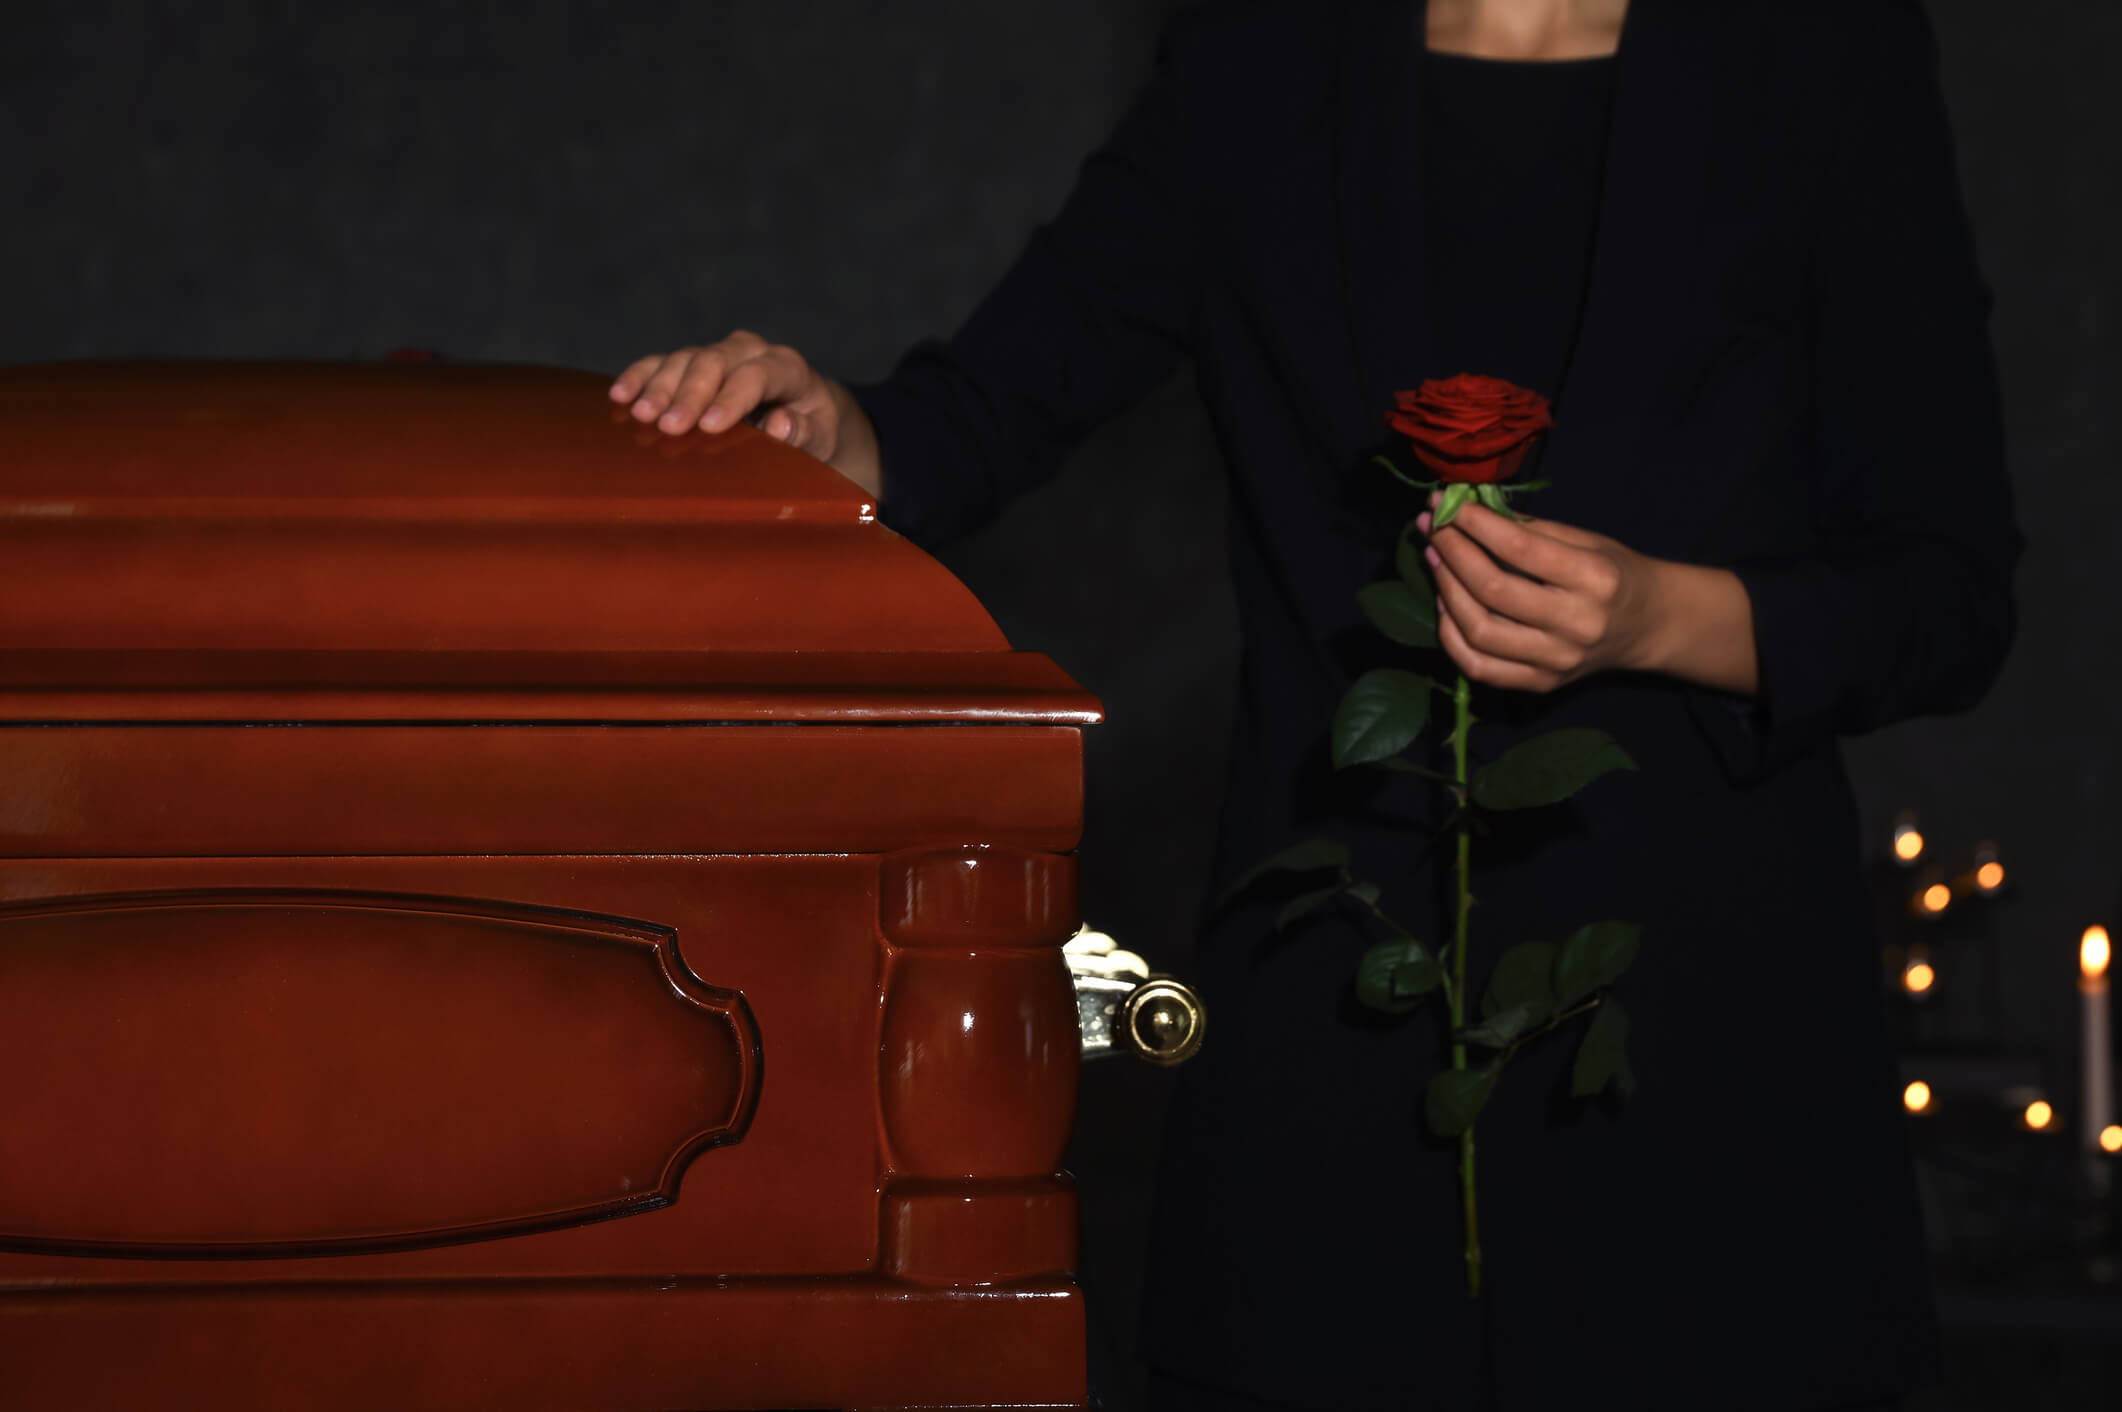 Young woman with red rose near casket in funeral home